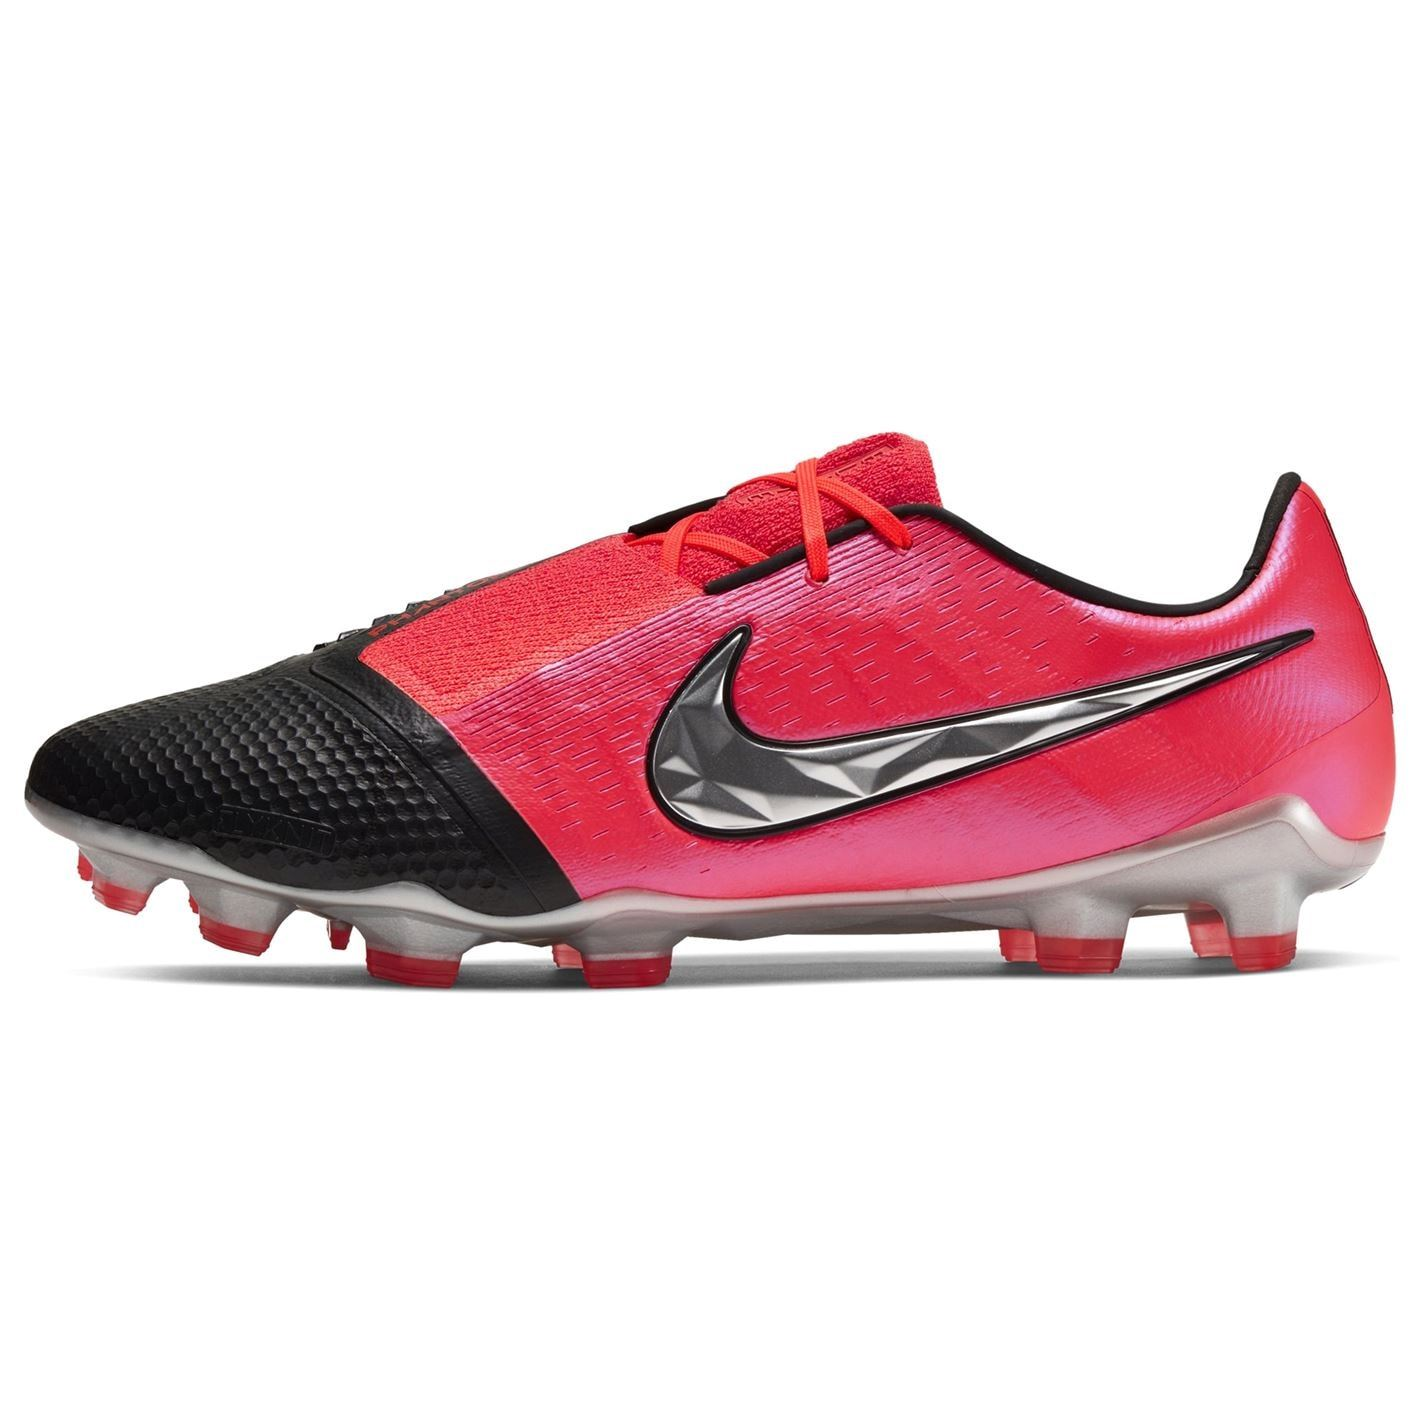 Nike-Phantom-Venom-Elite-Homme-FG-Firm-Ground-Chaussures-De-Football-Chaussures-de-foot-crampons miniature 15